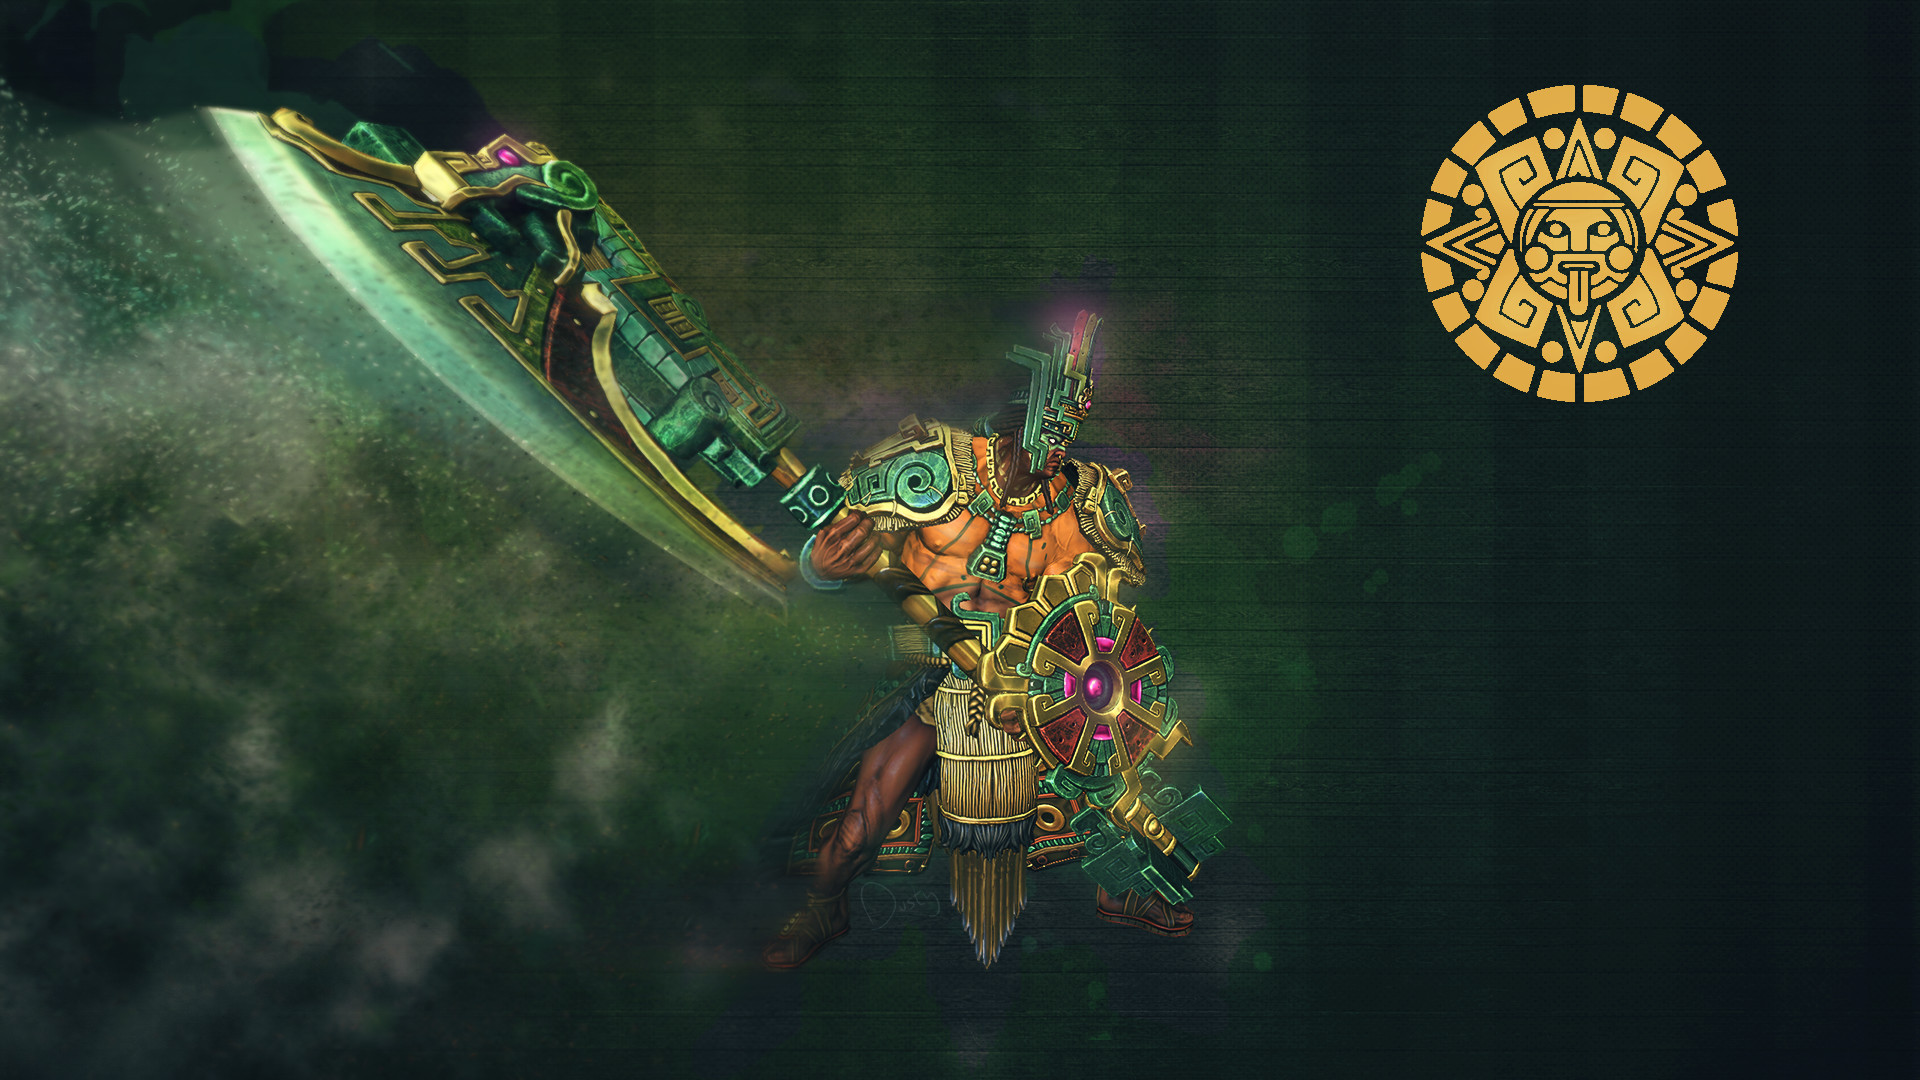 1920x1080 Chaac - SMITE Wallpaper by DustyMcBacon Chaac - SMITE Wallpaper by  DustyMcBacon